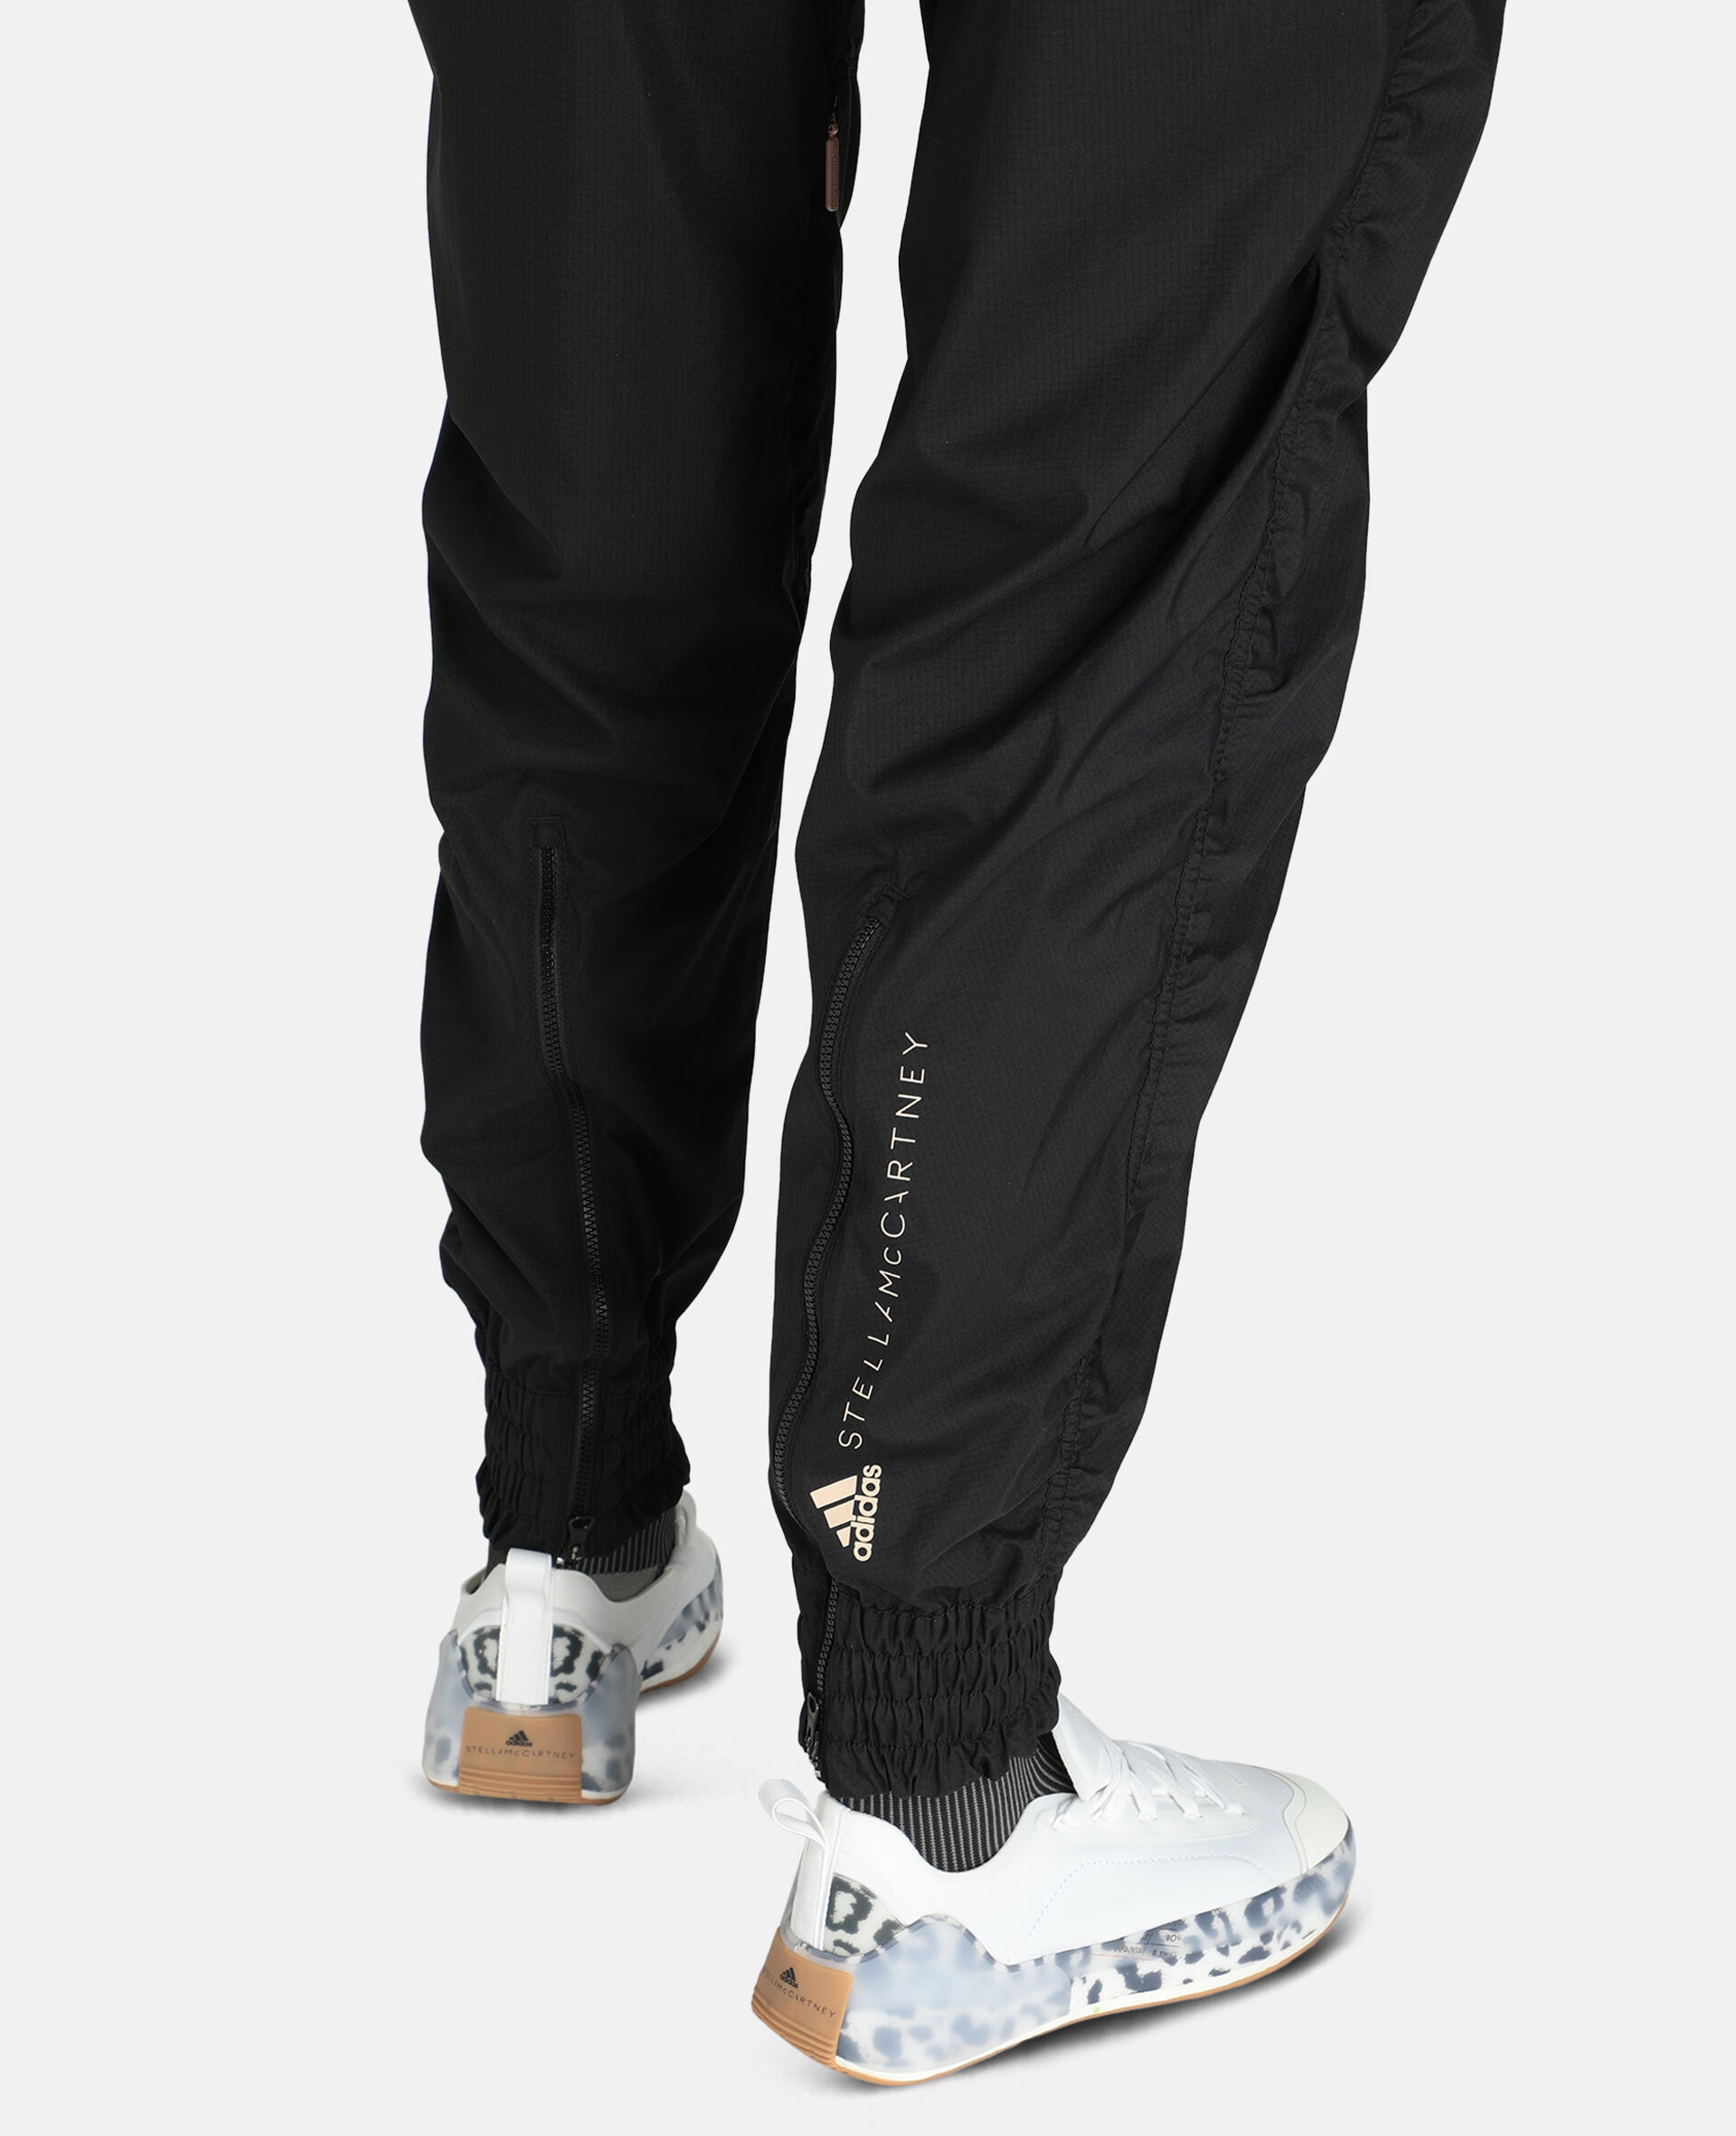 Black Woven Training Pants-Black-large image number 3